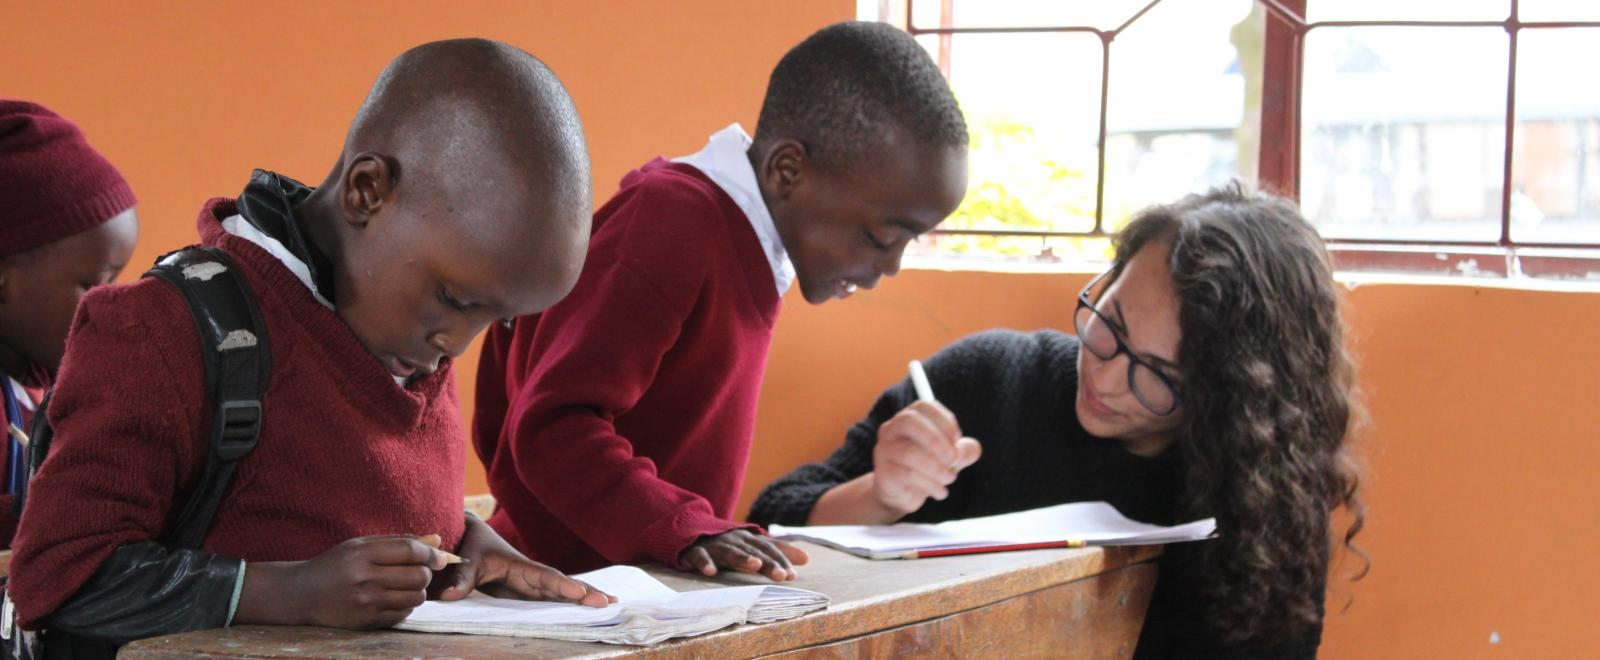 A high school special volunteer helps a child with a task in the classroom